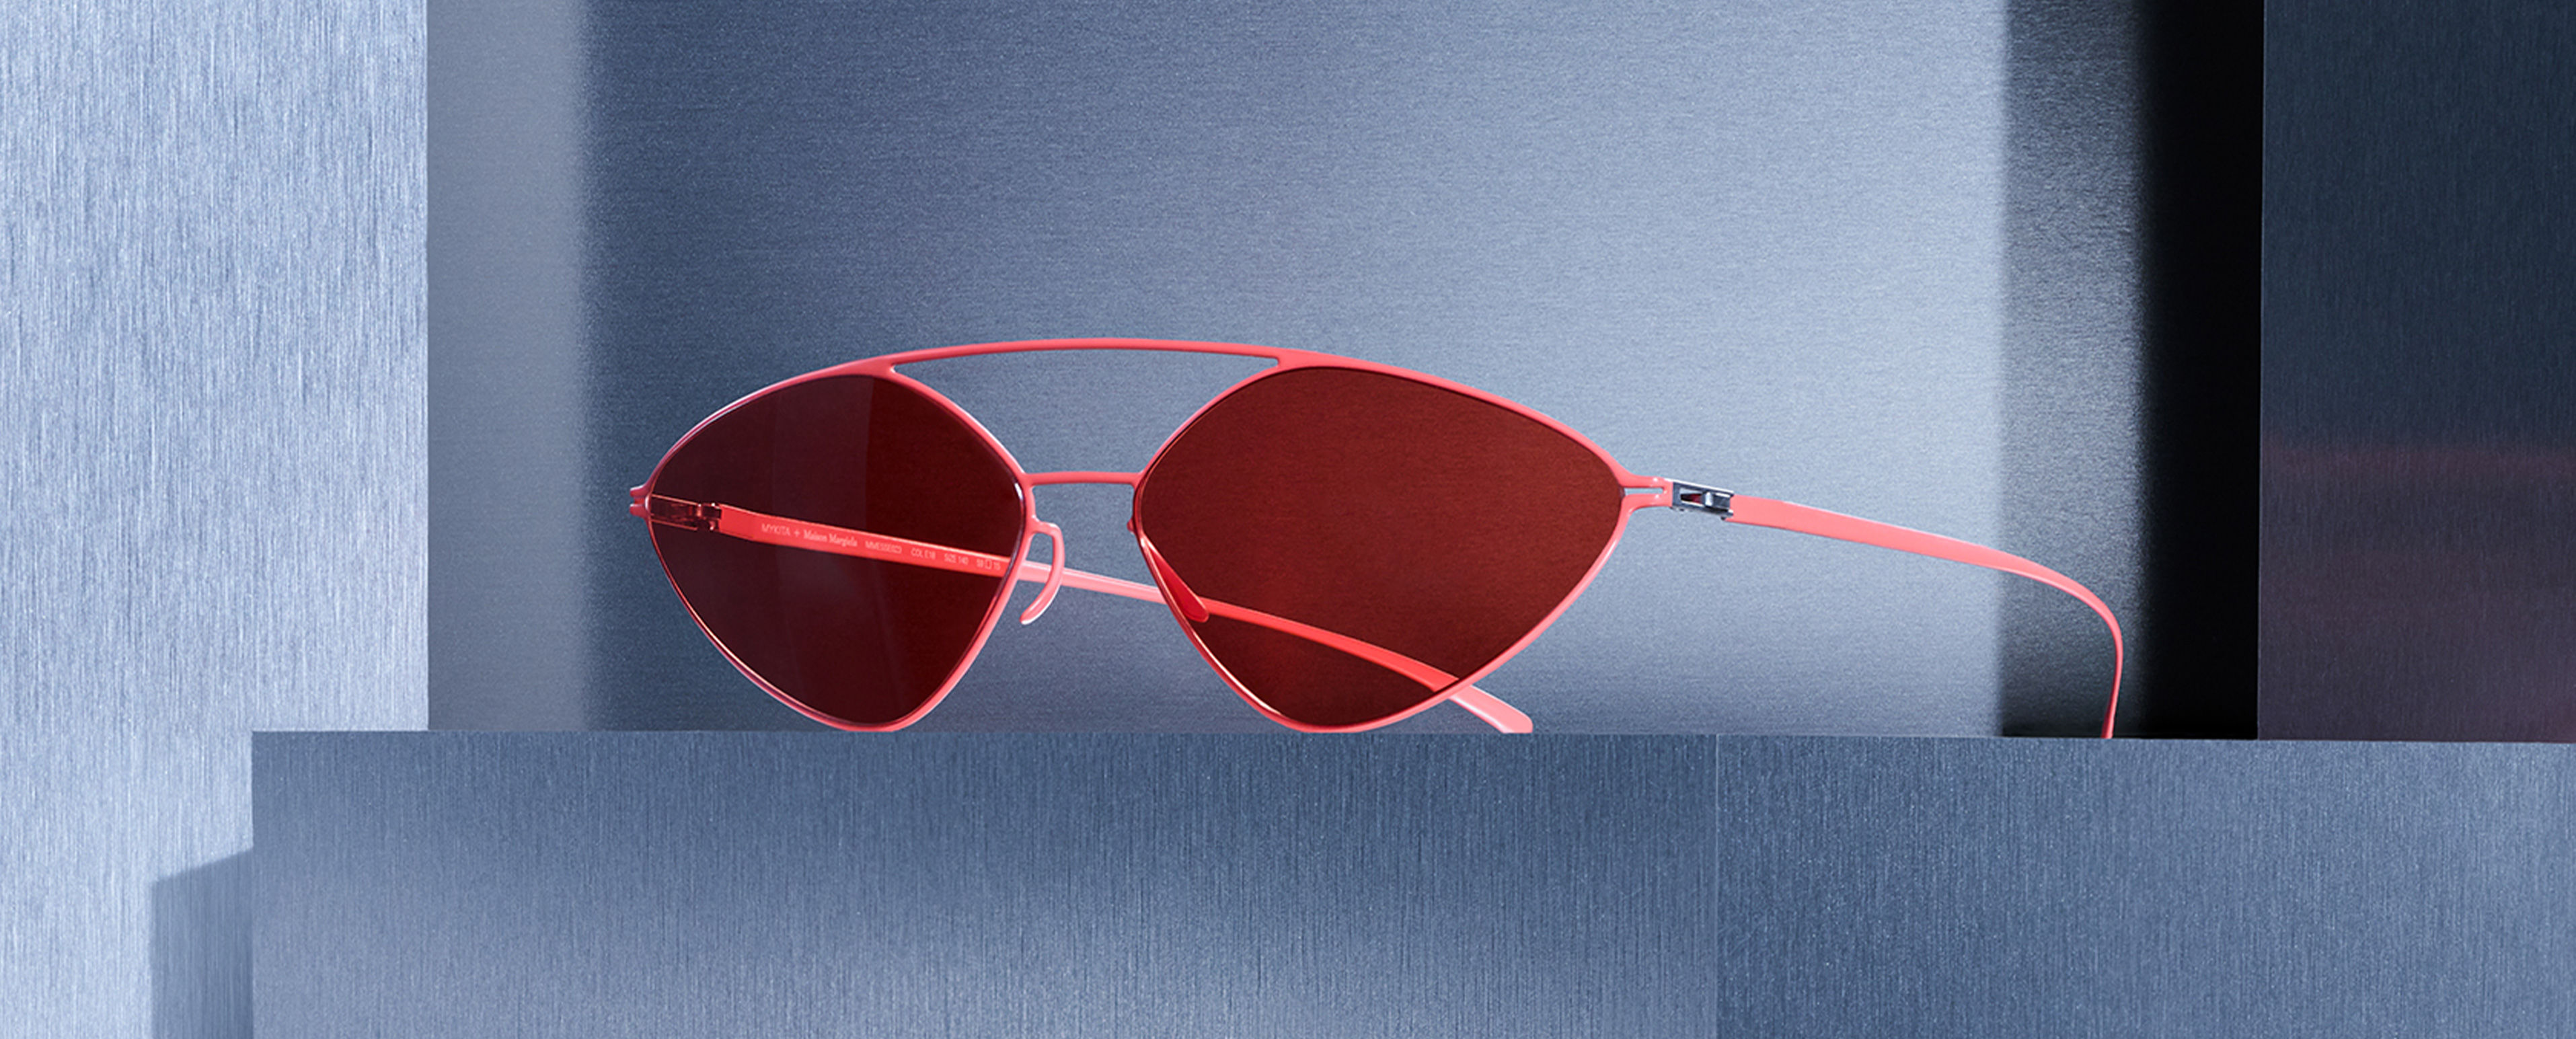 Sunglasses by Mykita x Maison Margiela